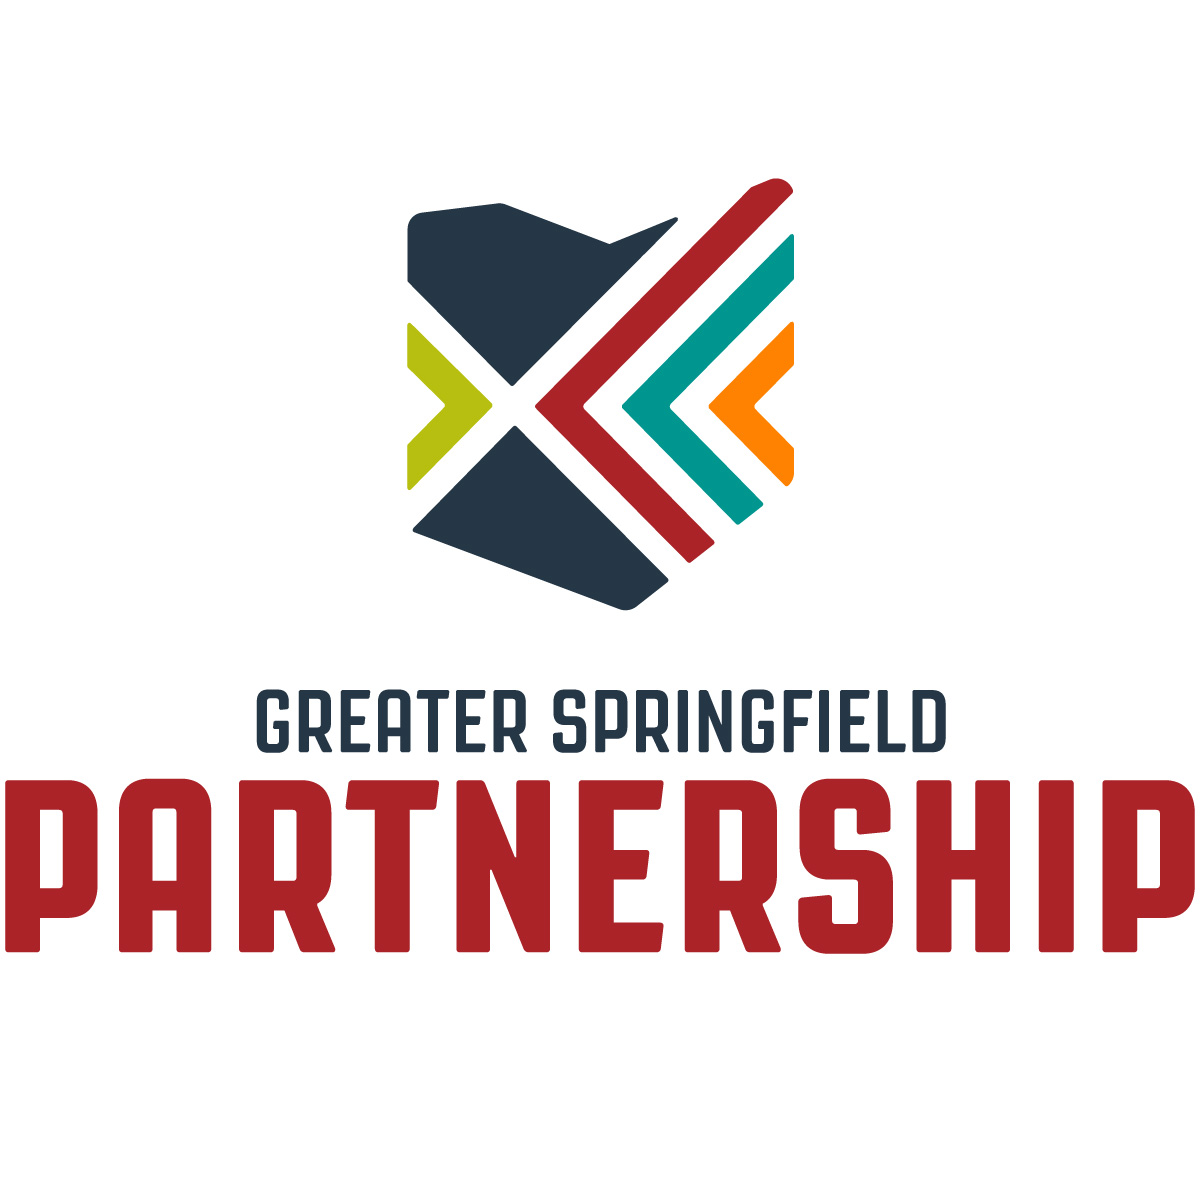 Greater Springfield Partnership